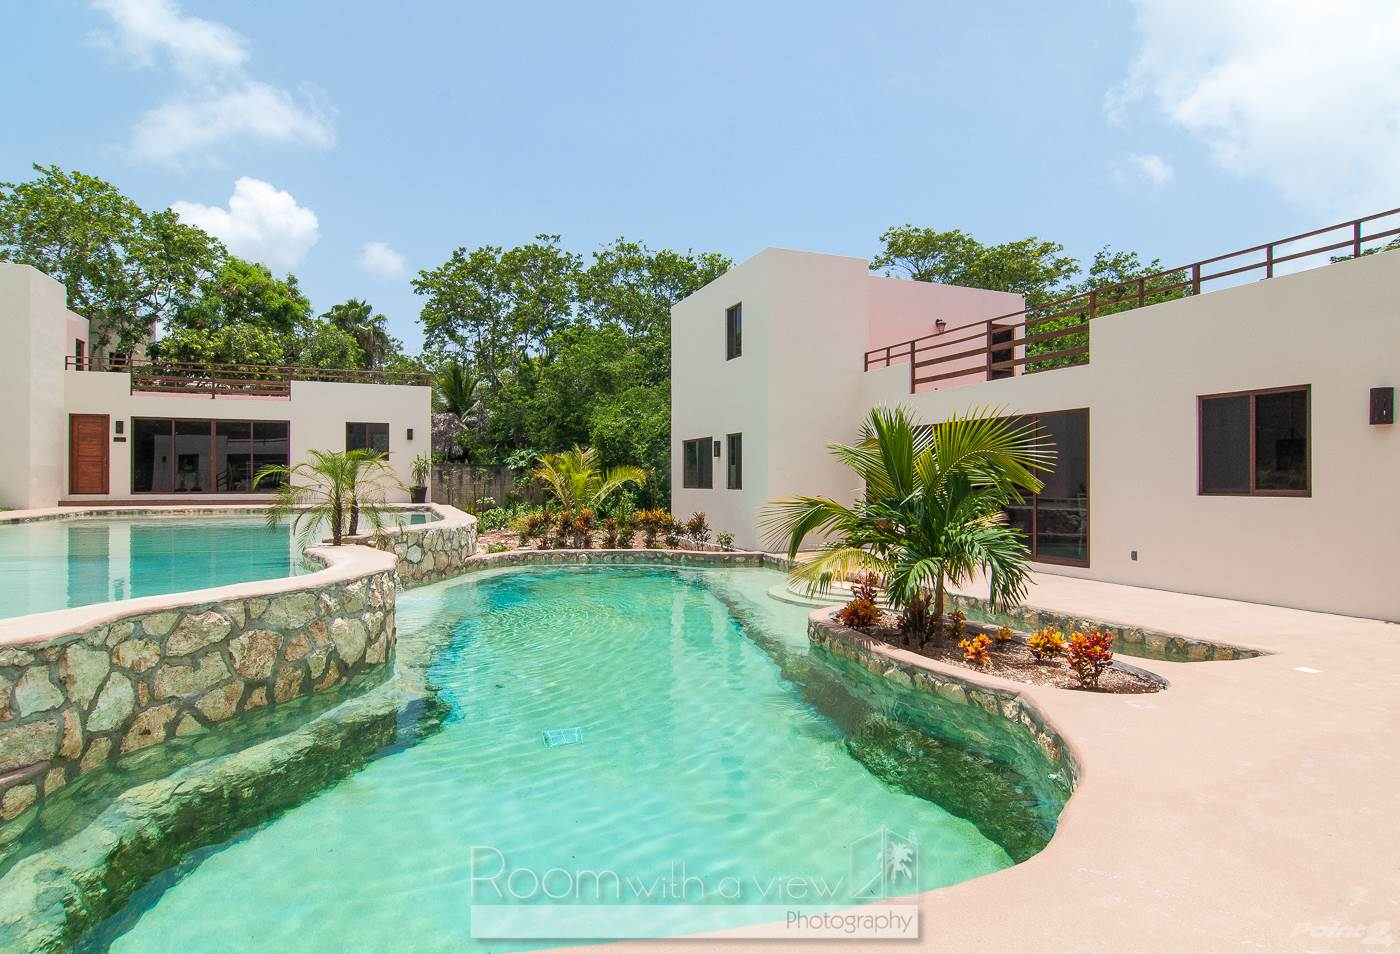 Akumal Real Estate, find Residential properties for sale in